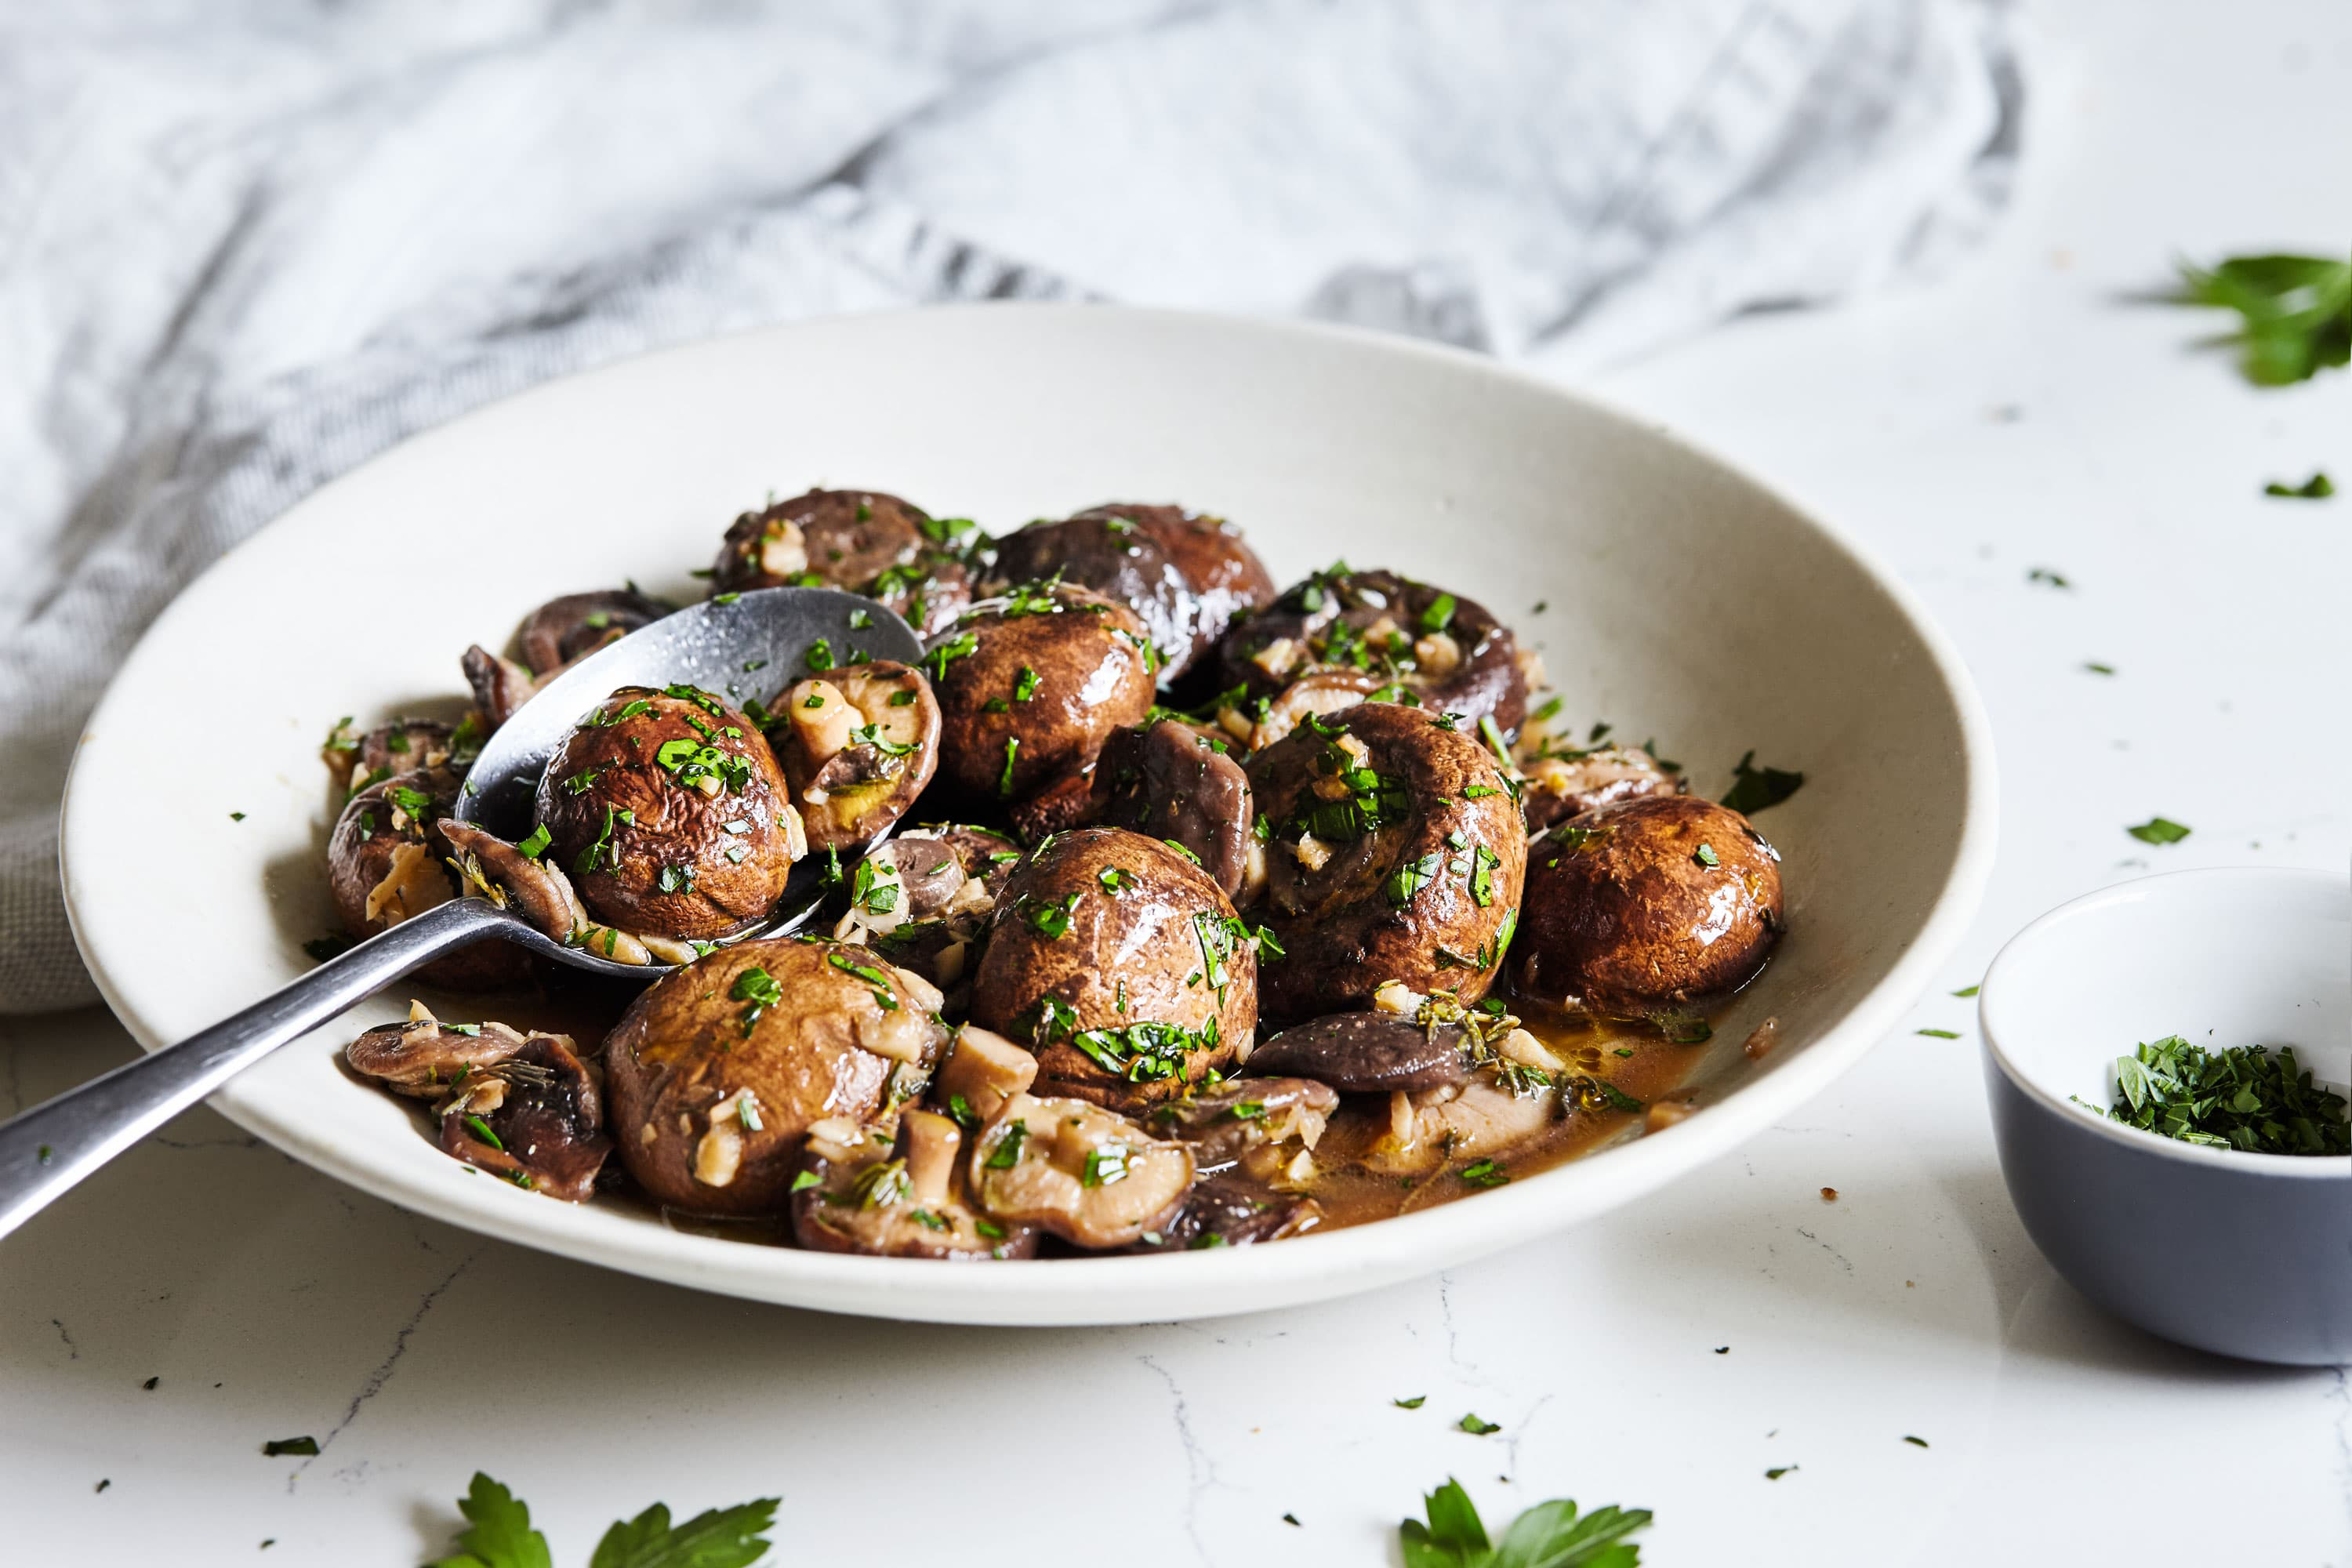 Easy Slow Cooker Recipes: Slow Cooker Mushrooms with Garlic and Herbs